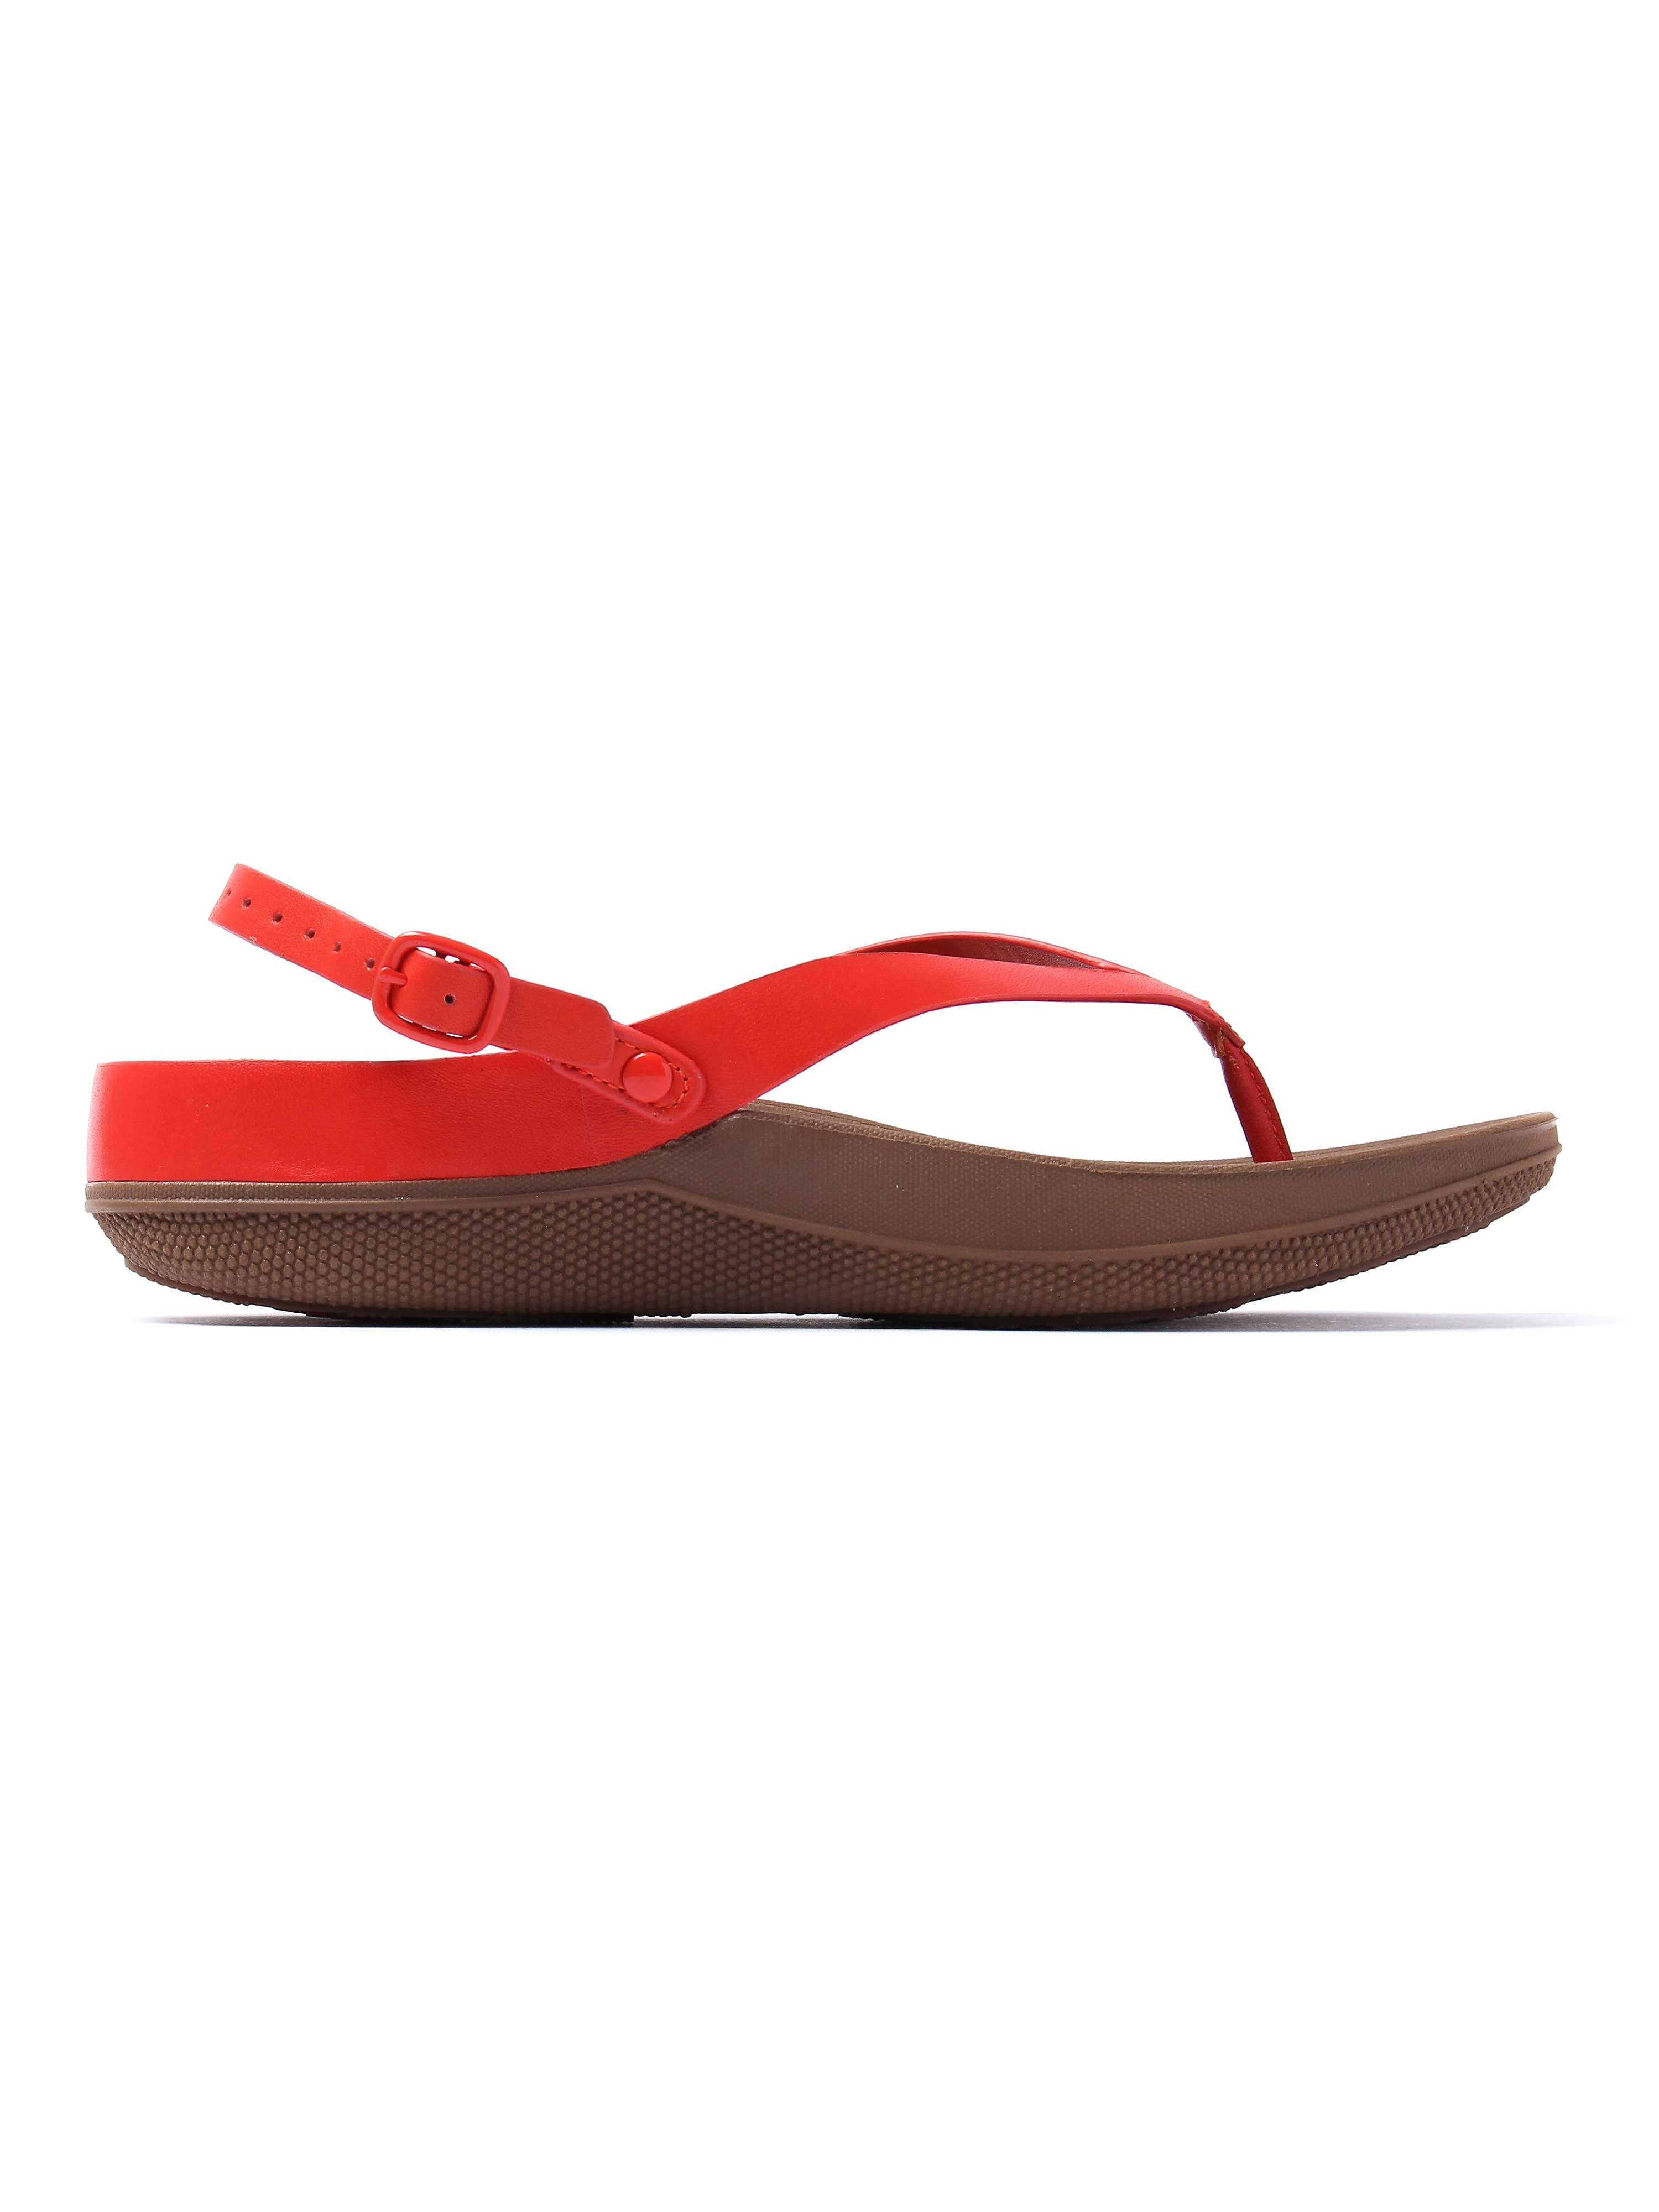 FitFlop Women's Flip Toe-Post Sandals - Flame Leather